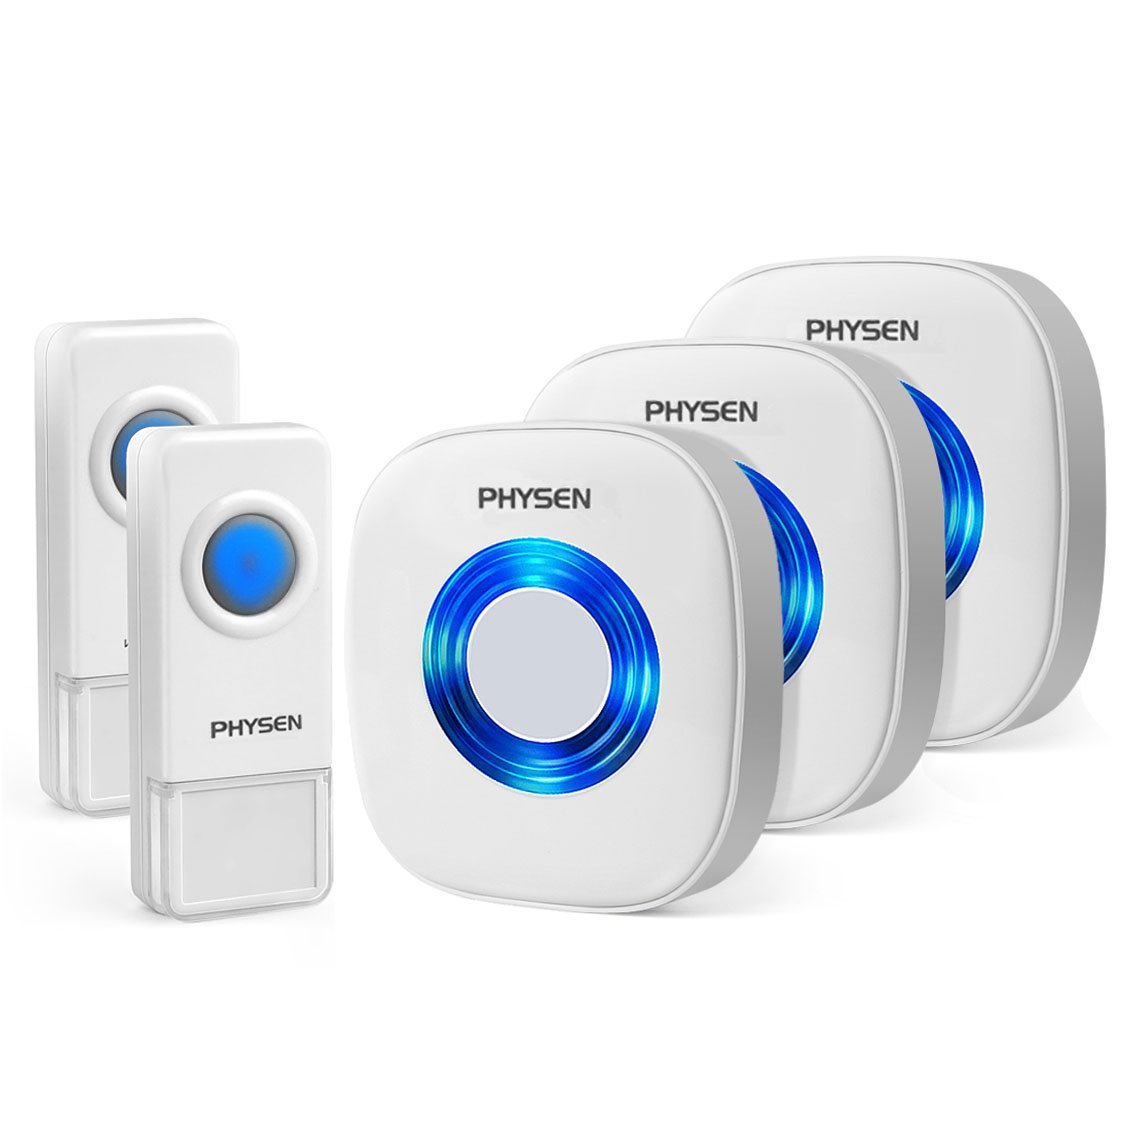 Wireless Doorbell, PHYSEN CW Waterproof Wireless Door Bell Door Chime, 2 Push Buttons and 3 Plug in Receivers, Operating up to 1000 Feet Range, 4 Adjustable Volume Levels with 52 Chimes, White&Blue LED